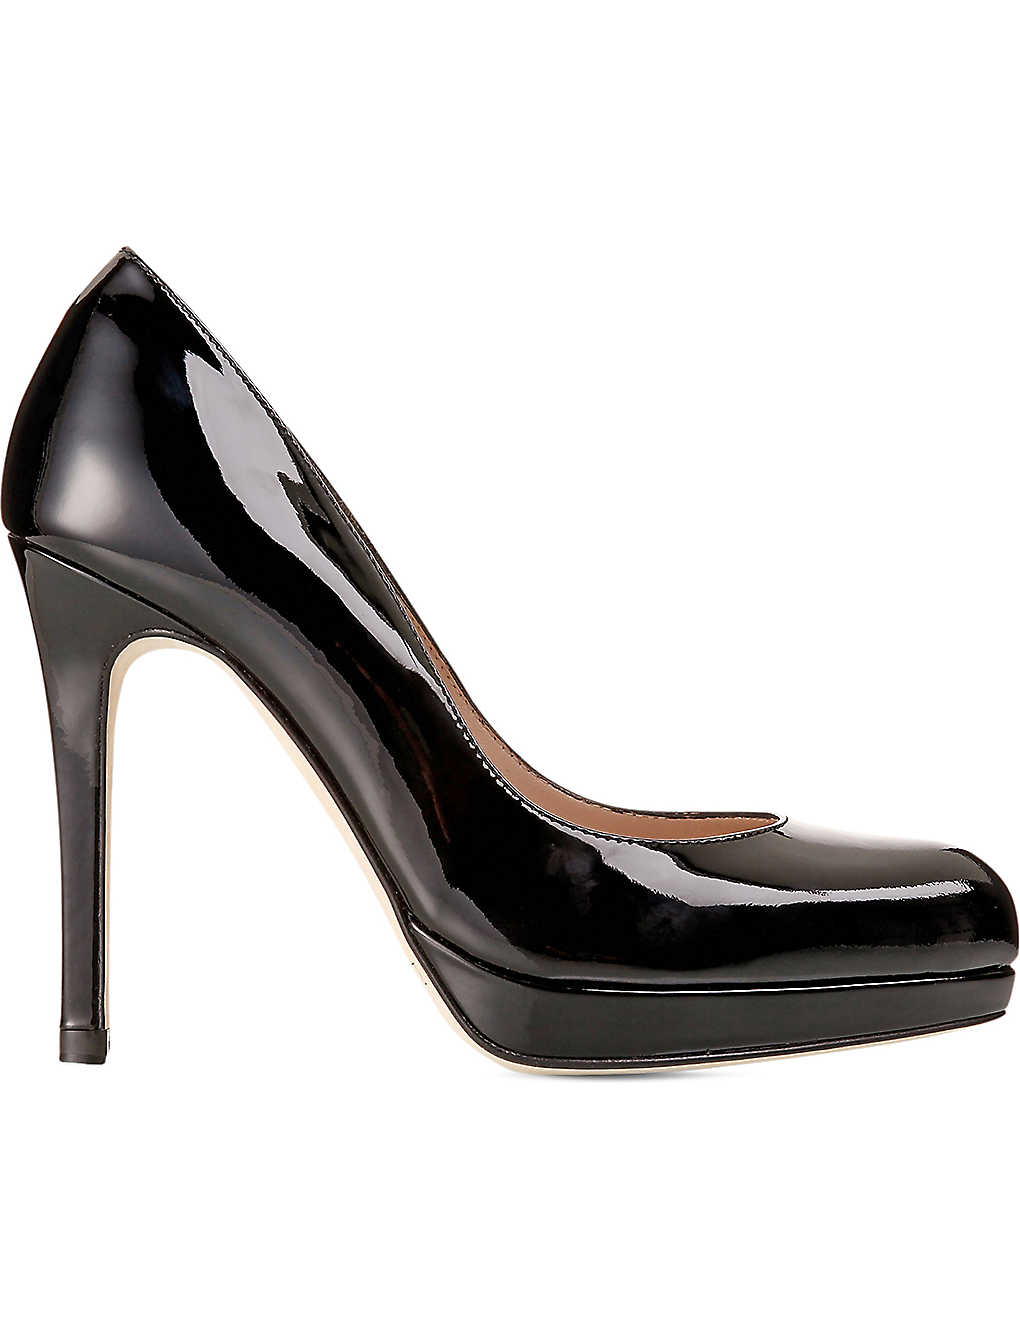 147f515890c LK BENNETT - Sledge patent-leather courts